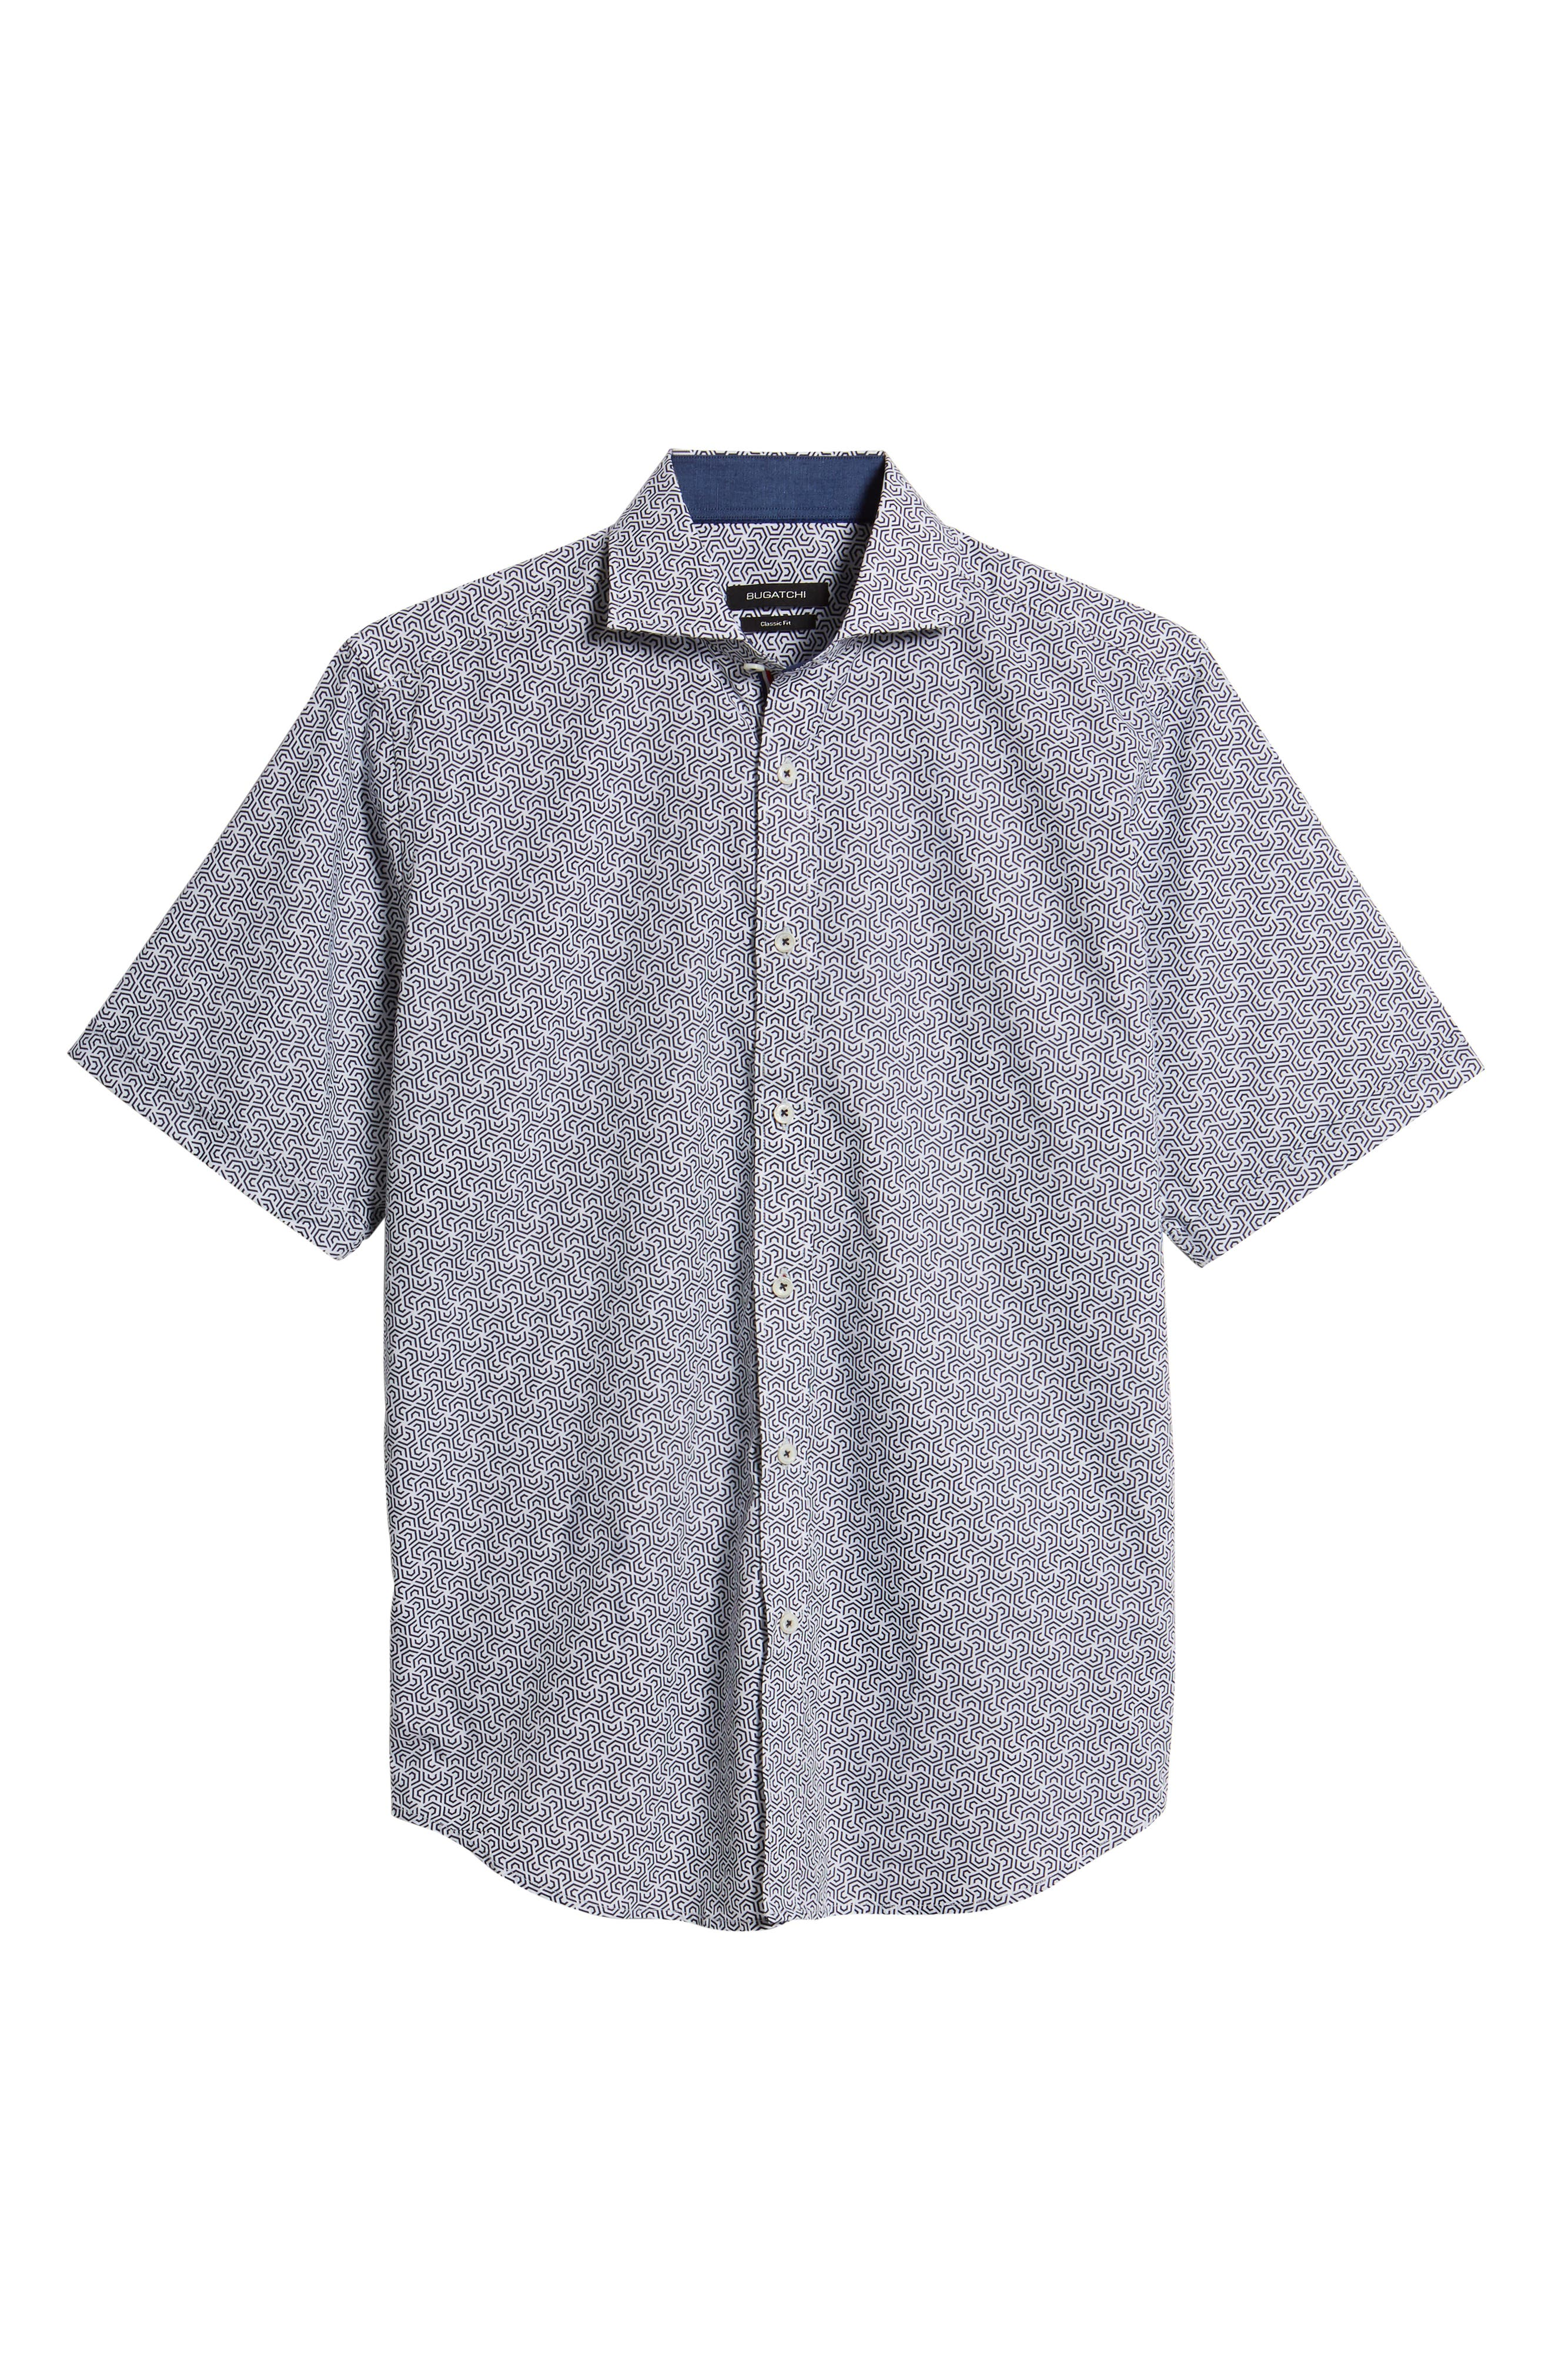 Classic Fit Maze Print Sport Shirt,                             Alternate thumbnail 5, color,                             NAVY